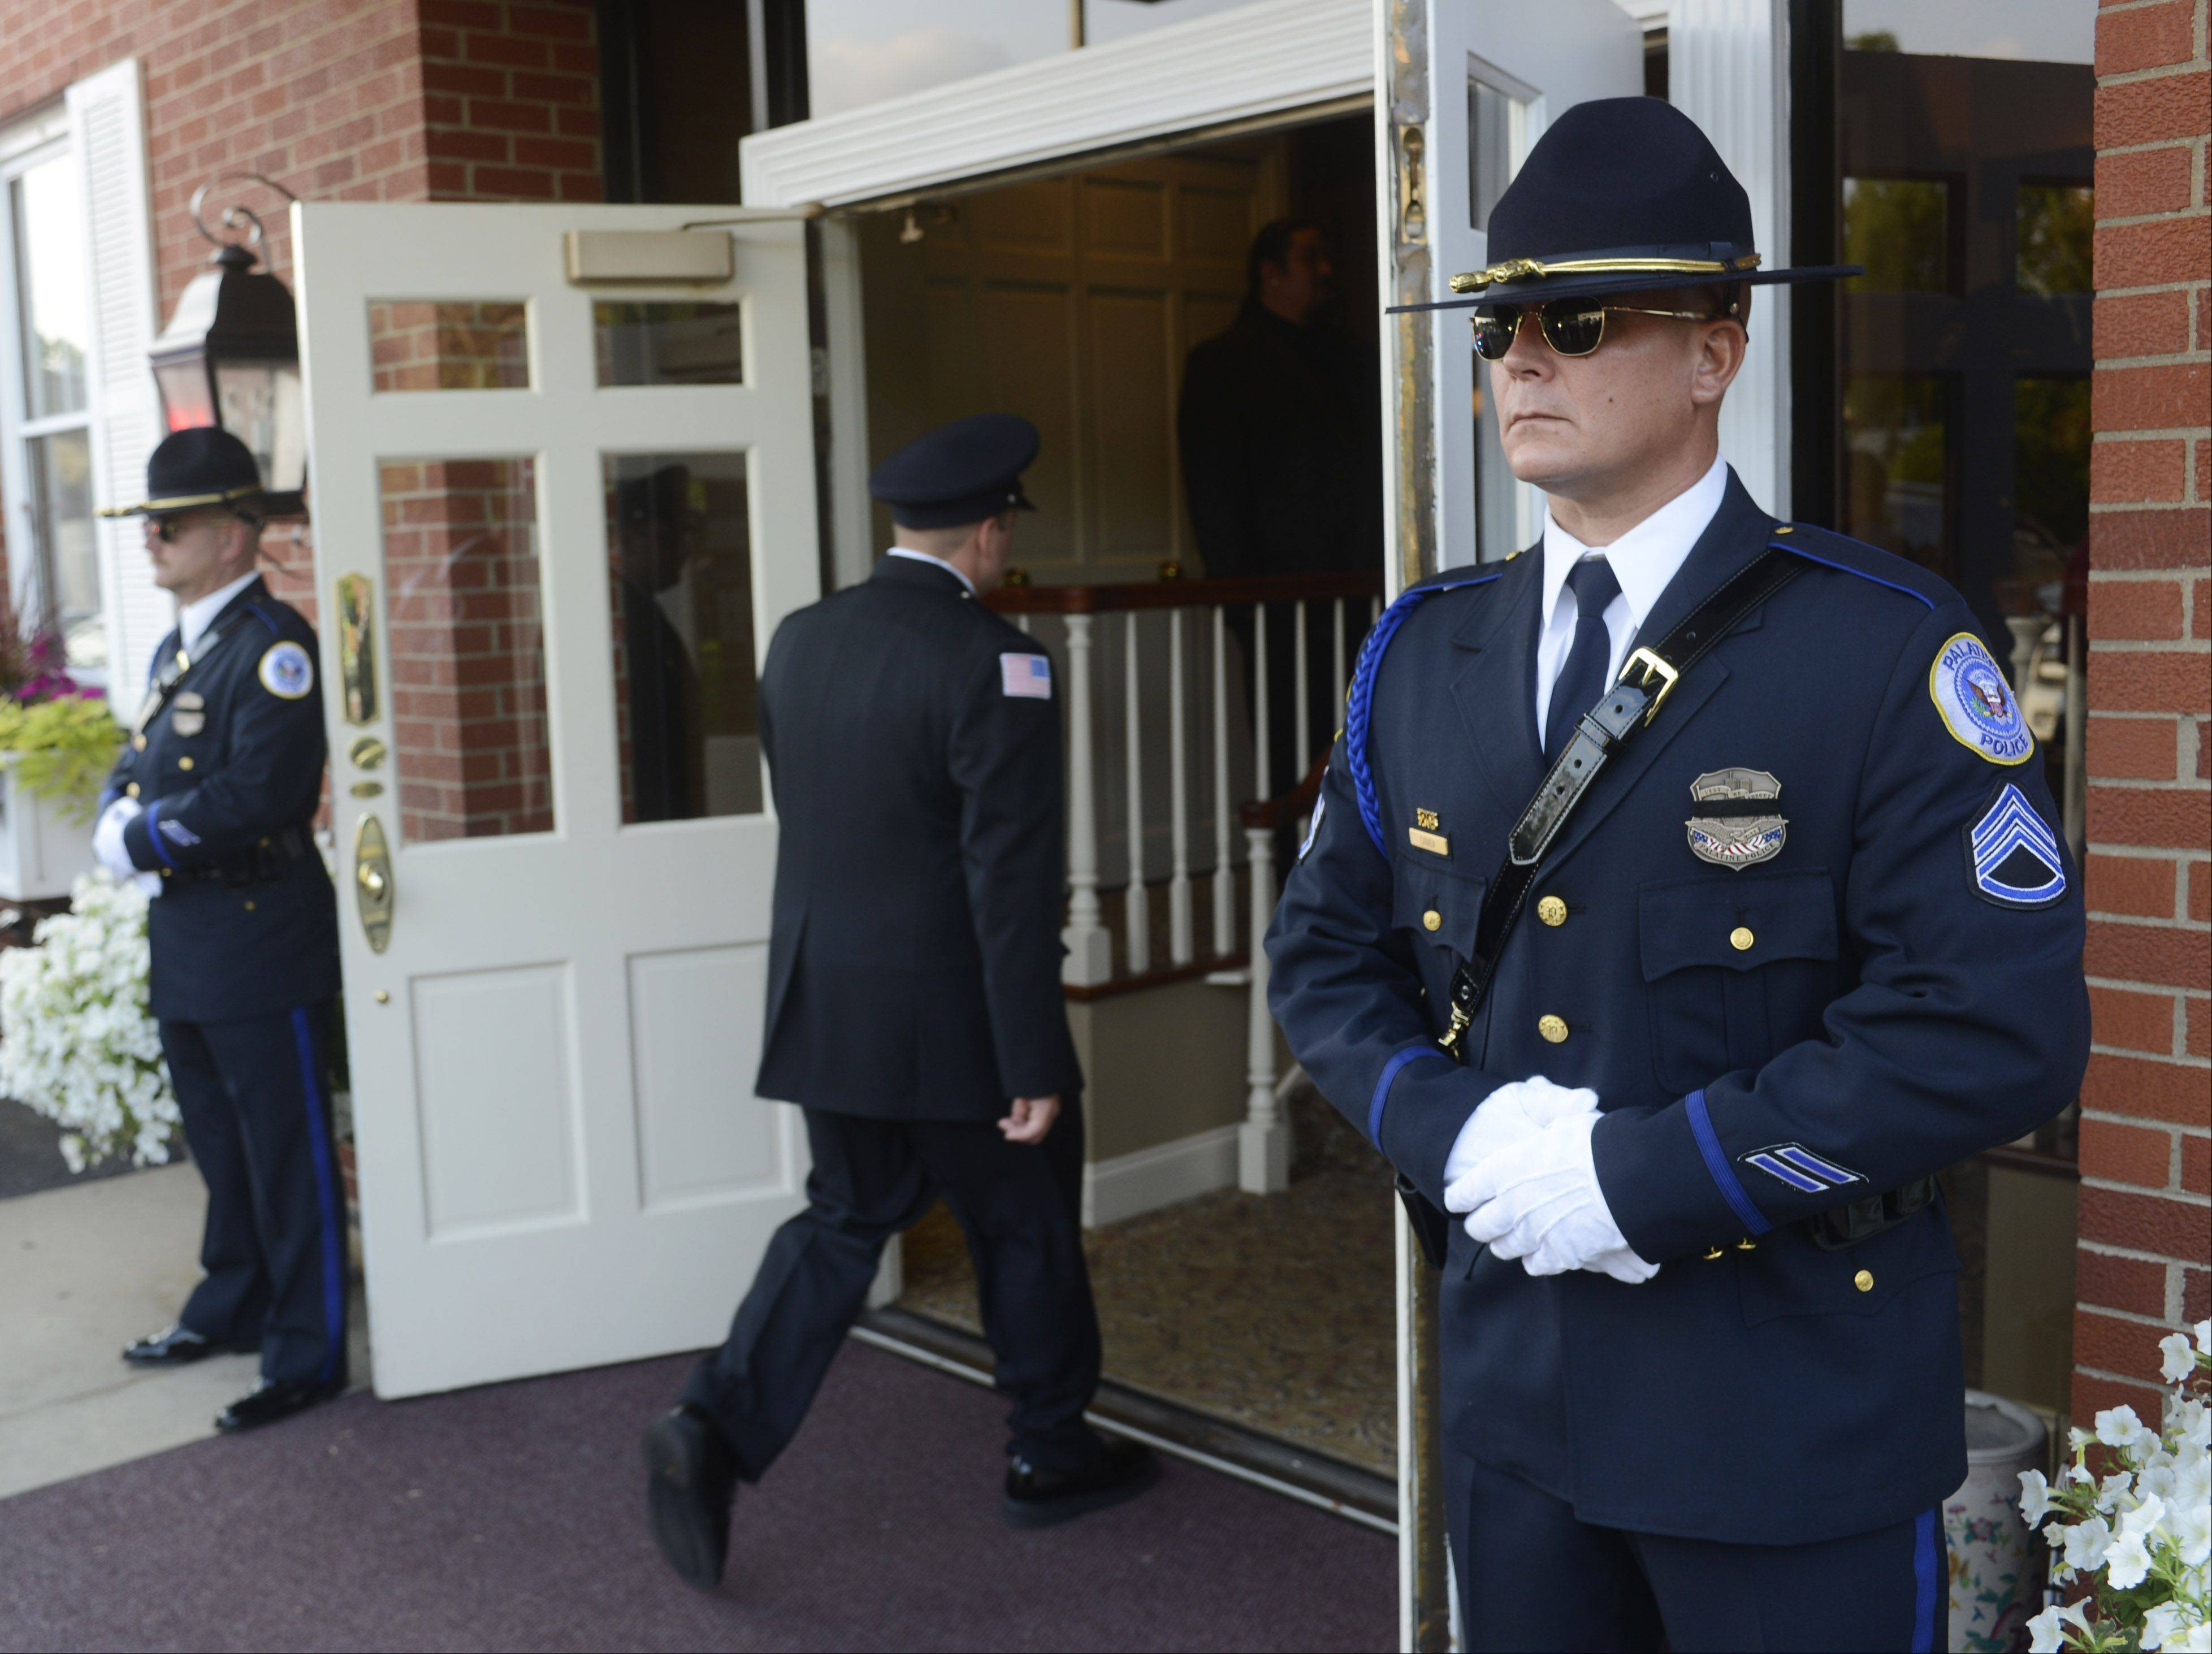 Palatine Police Department Sgt. Larry Canada, right, and officer Mark Dockendorf stand at attention outside the entrance during the wake for Wheeling police officer Shamekia Goodwin-Badger at Kolssak Funeral Home in Wheeling Wednesday.